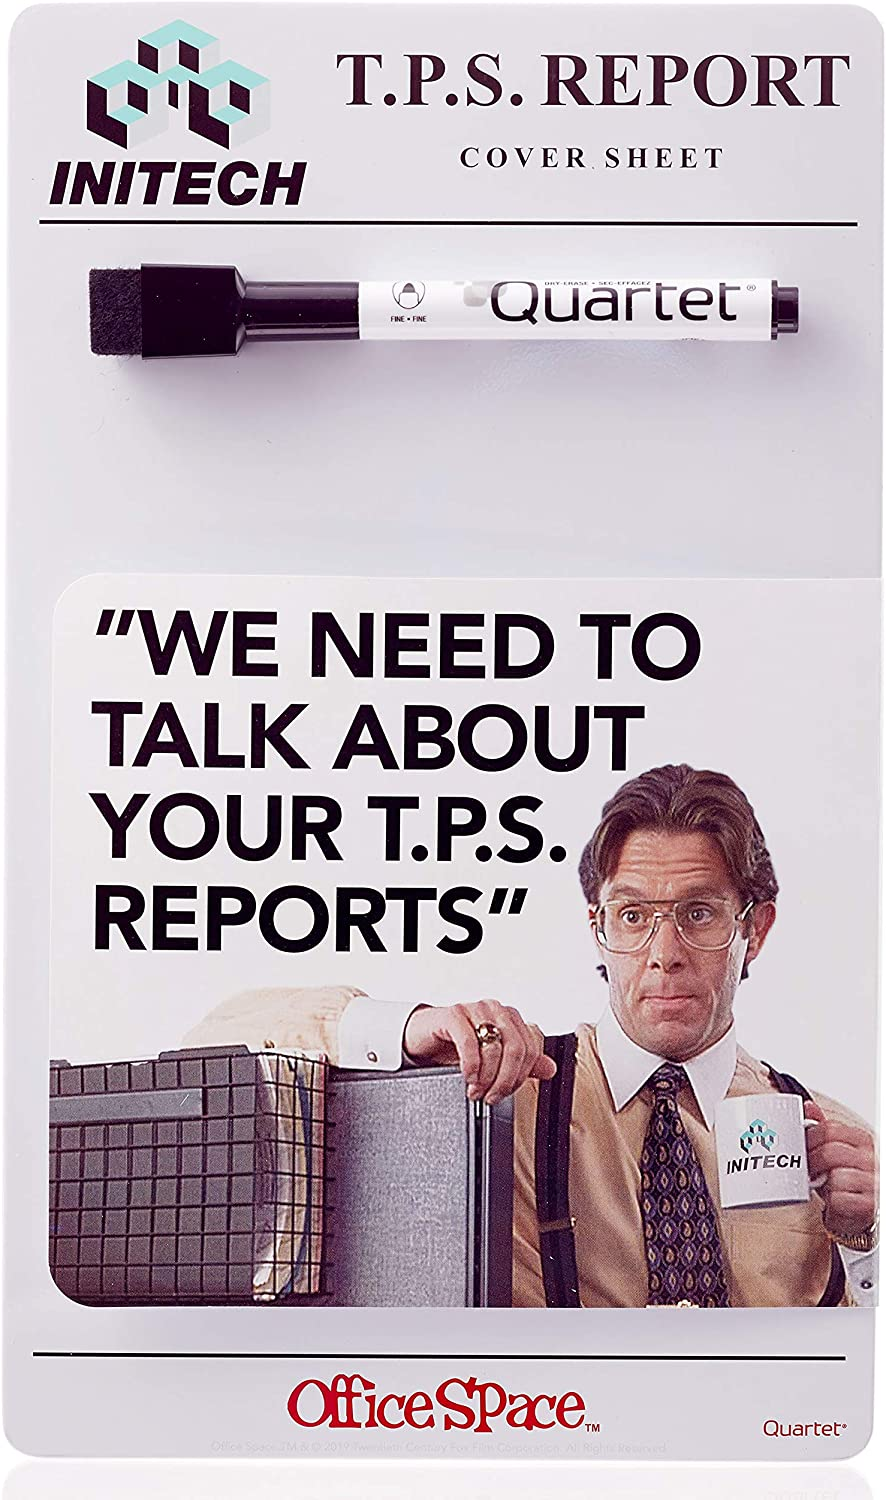 Quartet Dry Erase Board, TPS Report Cover Sheet from Office Space Movie, 6